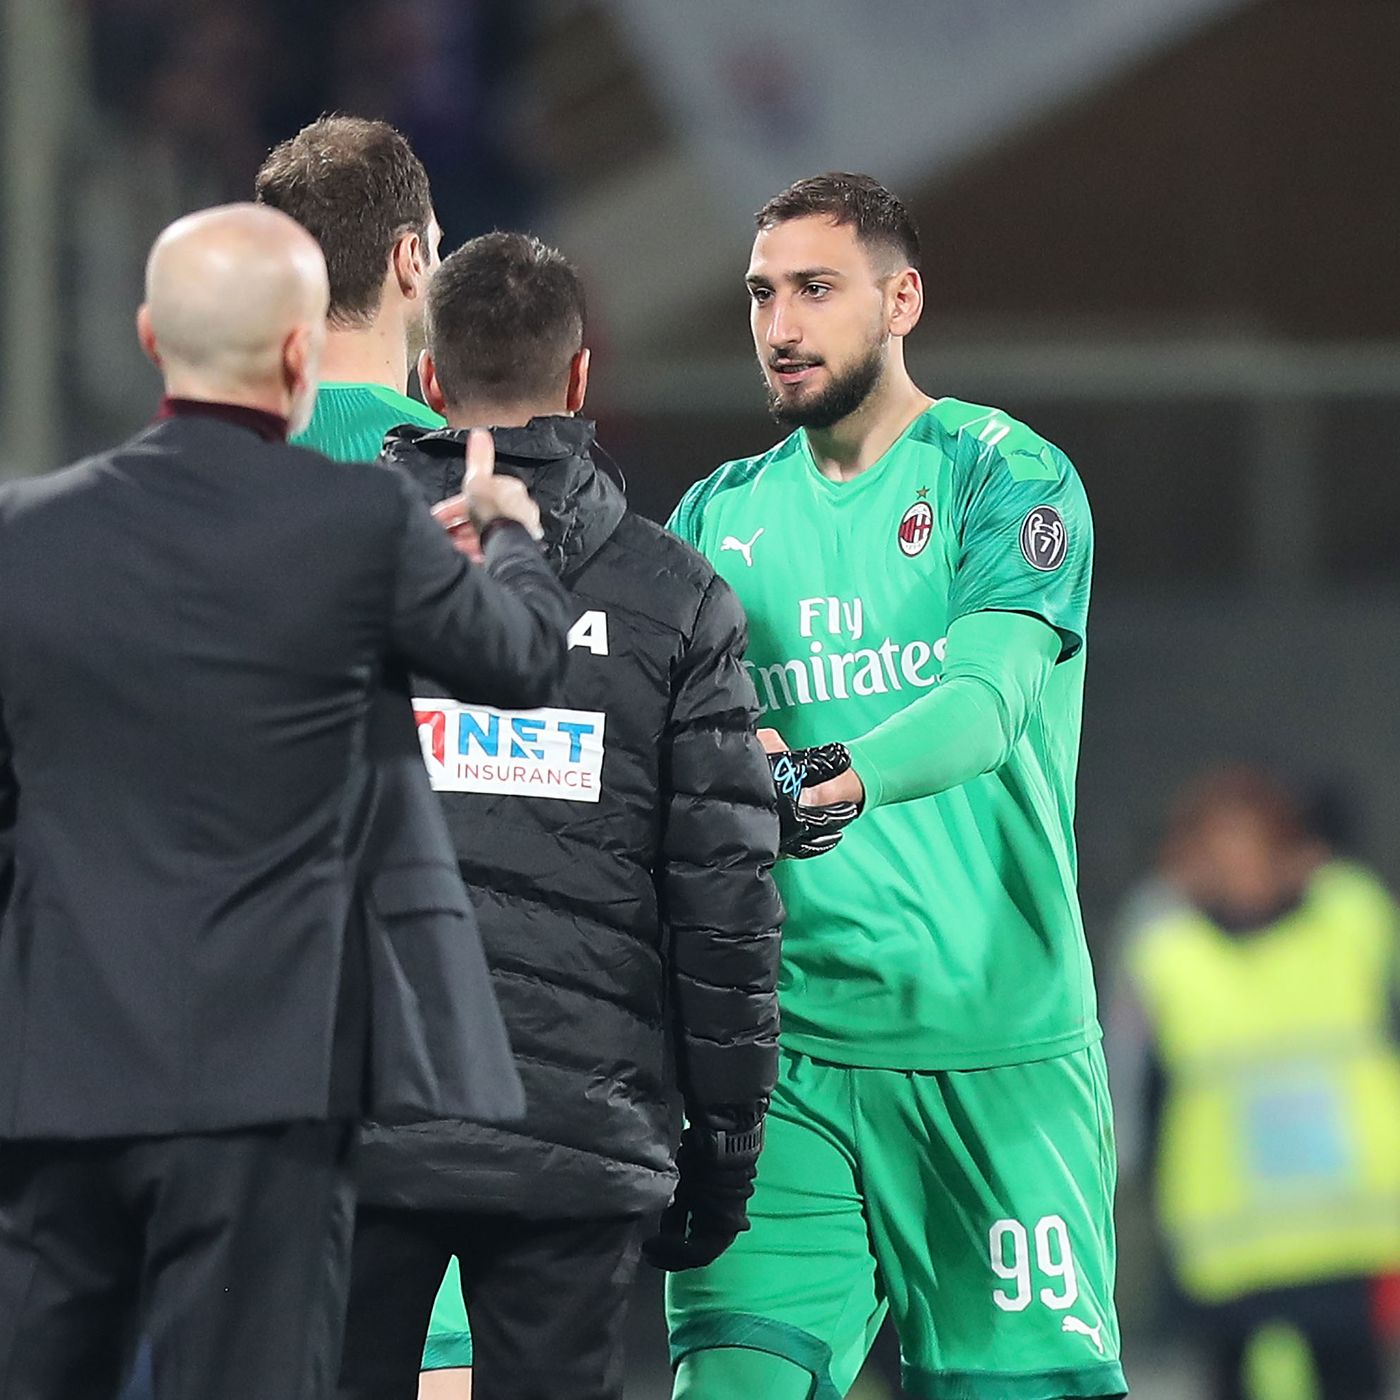 Ac Milan Goalkeeper Donnarumma Picks Up Ankle Injury Against Fiorentina Extent Unknown The Ac Milan Offside